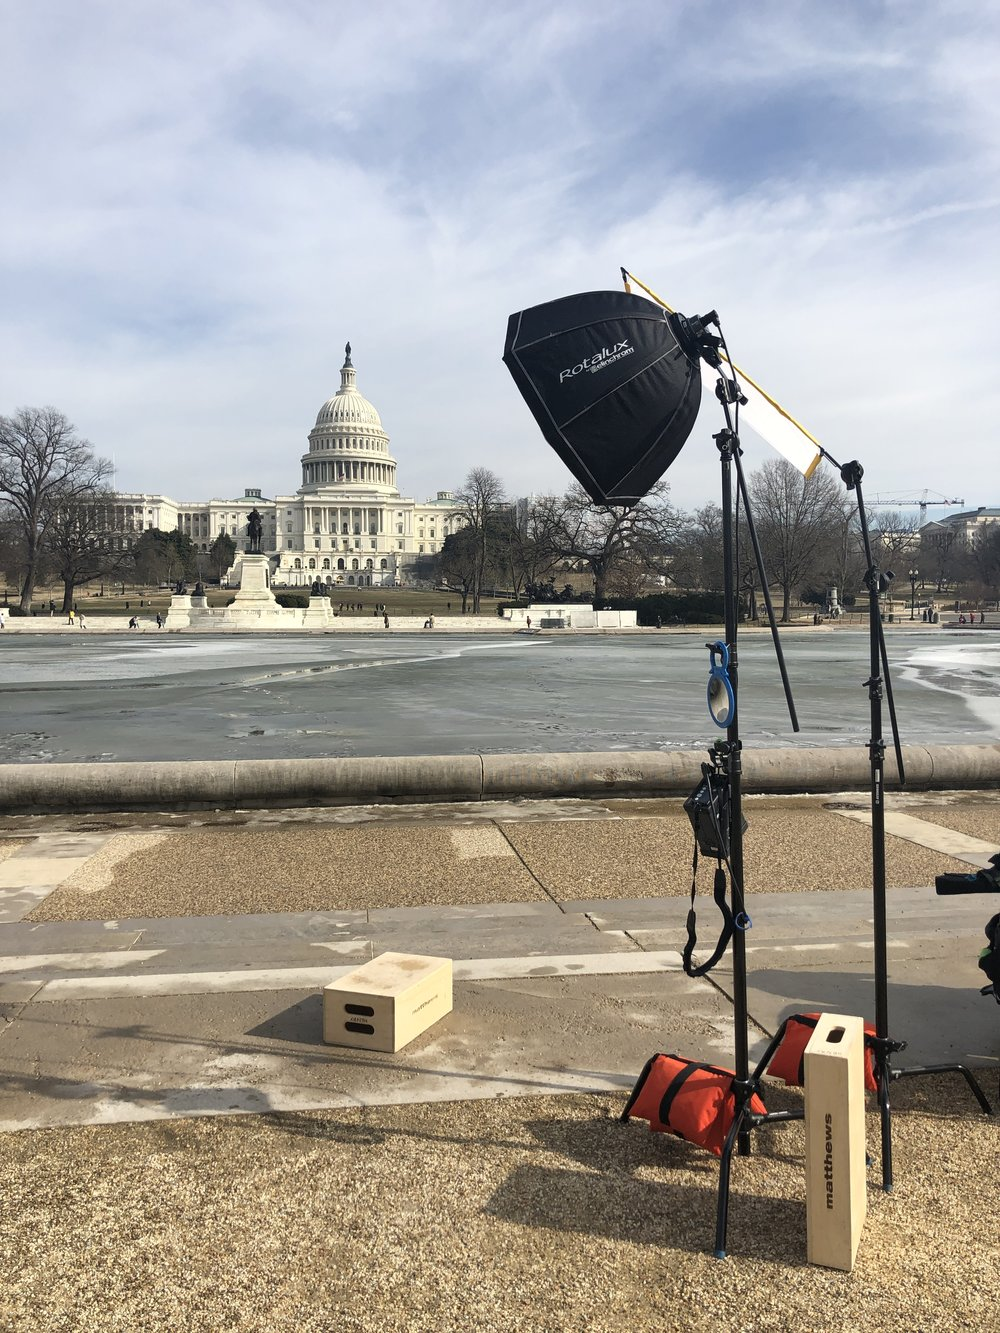 Portrait setup in front of the US Capitol.